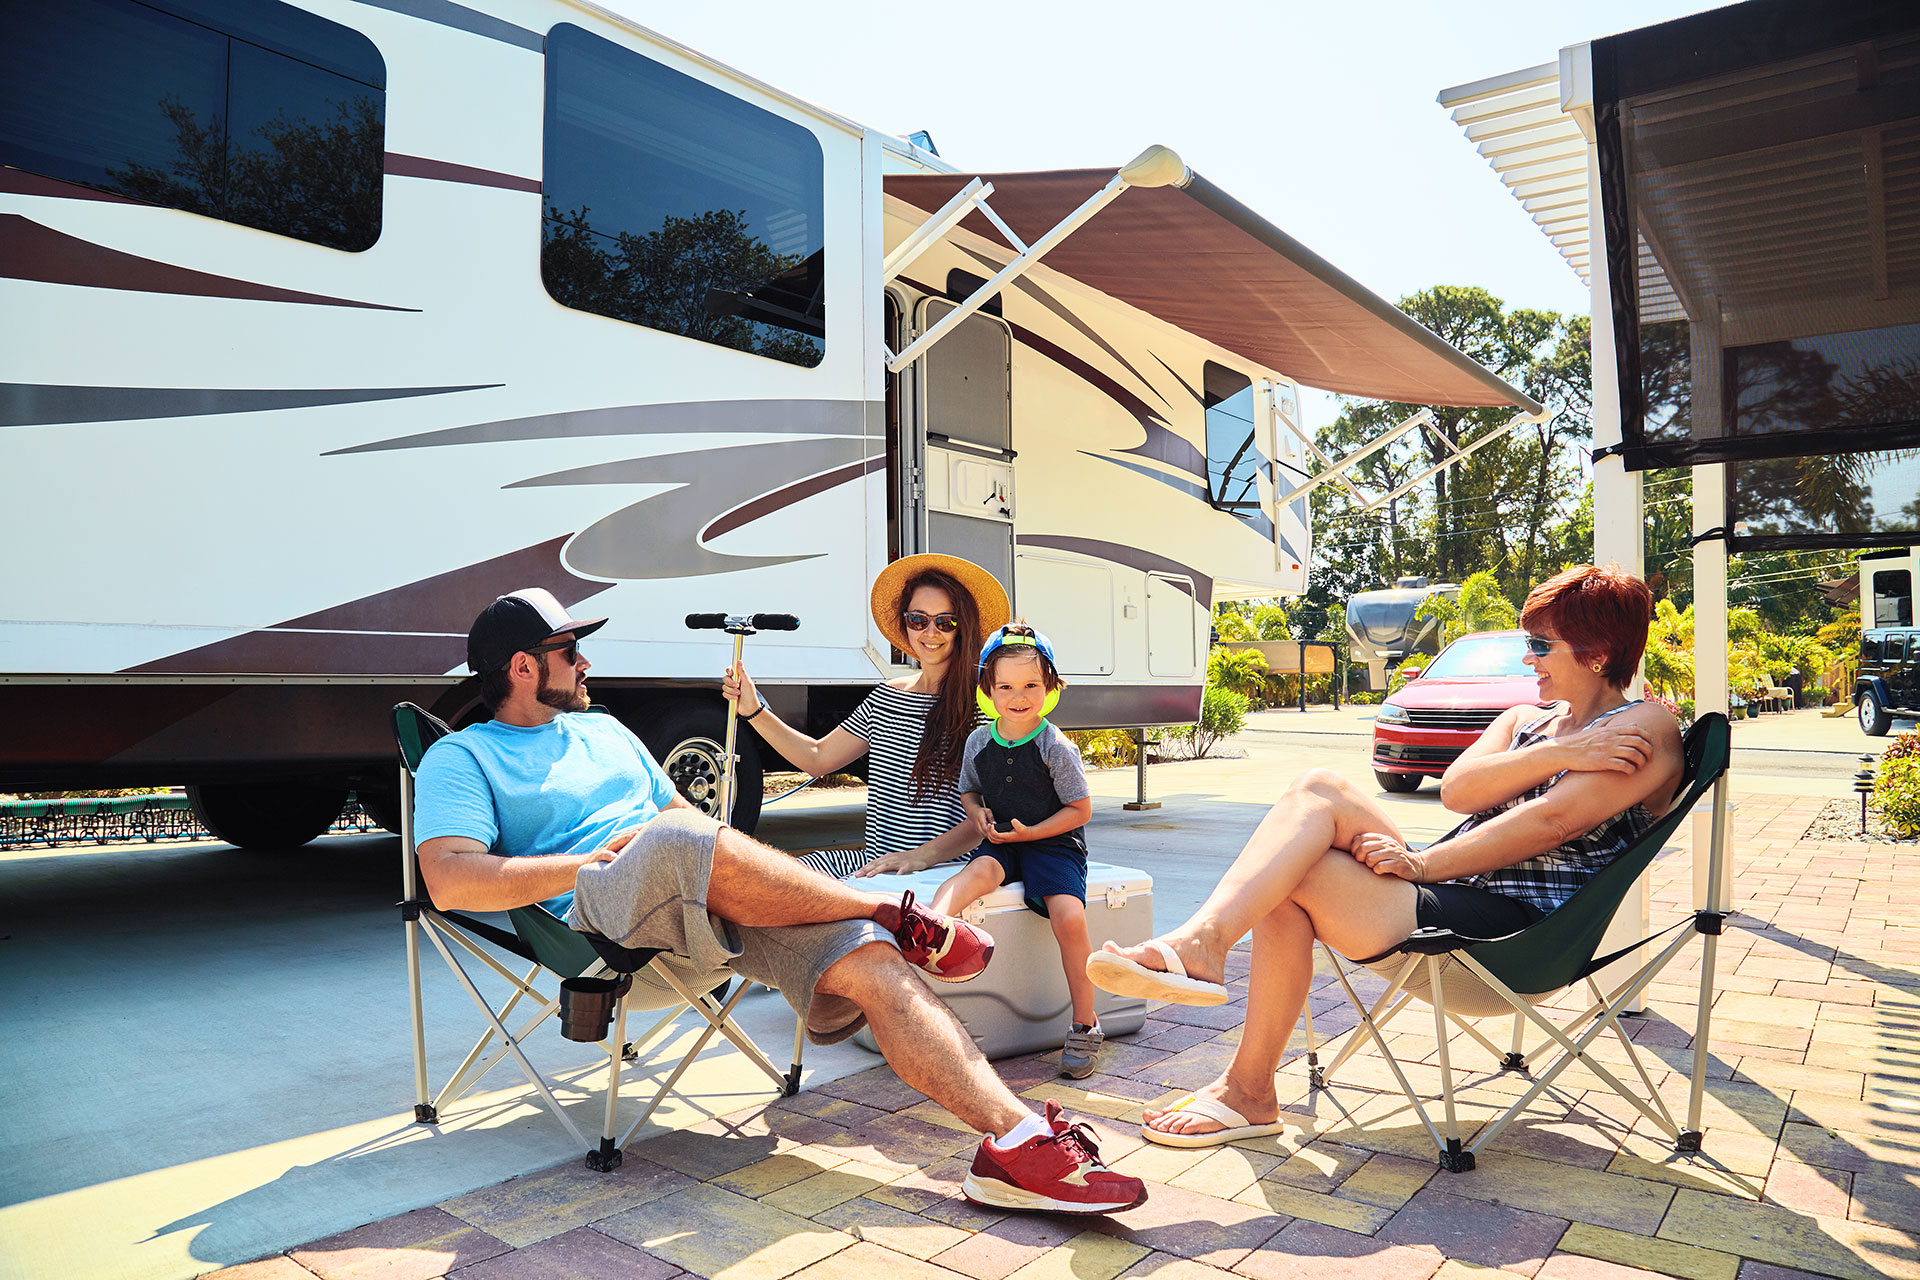 Family With RV; Courtesy of Lazor/Shutterstock.com